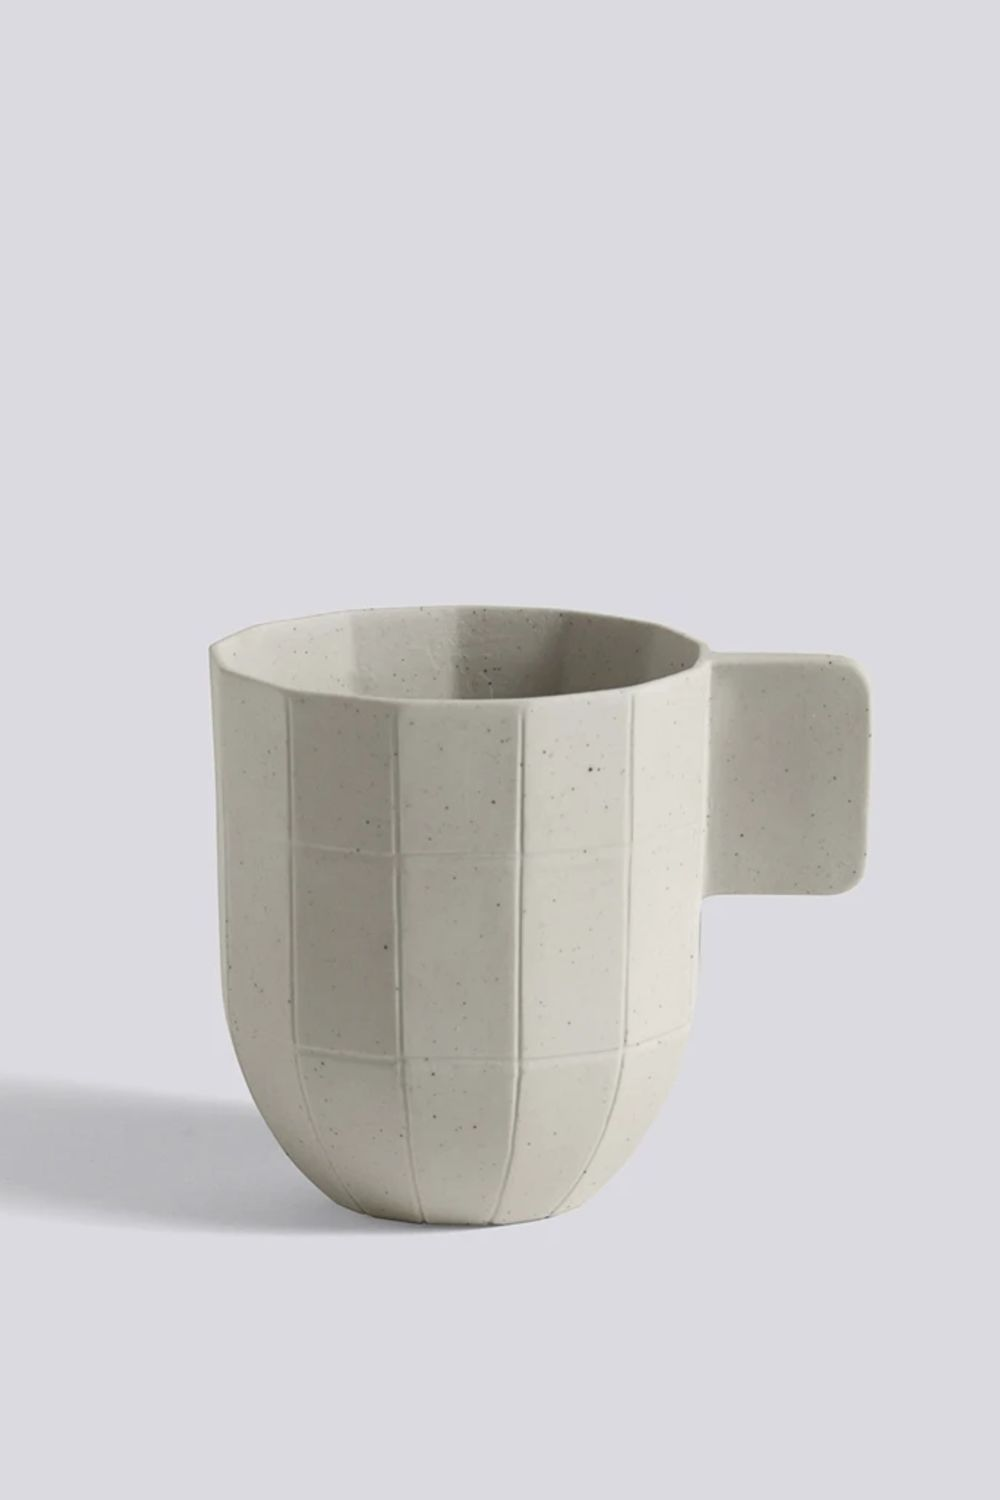 Paper-Porcelain-coffee-cup_1024x1024